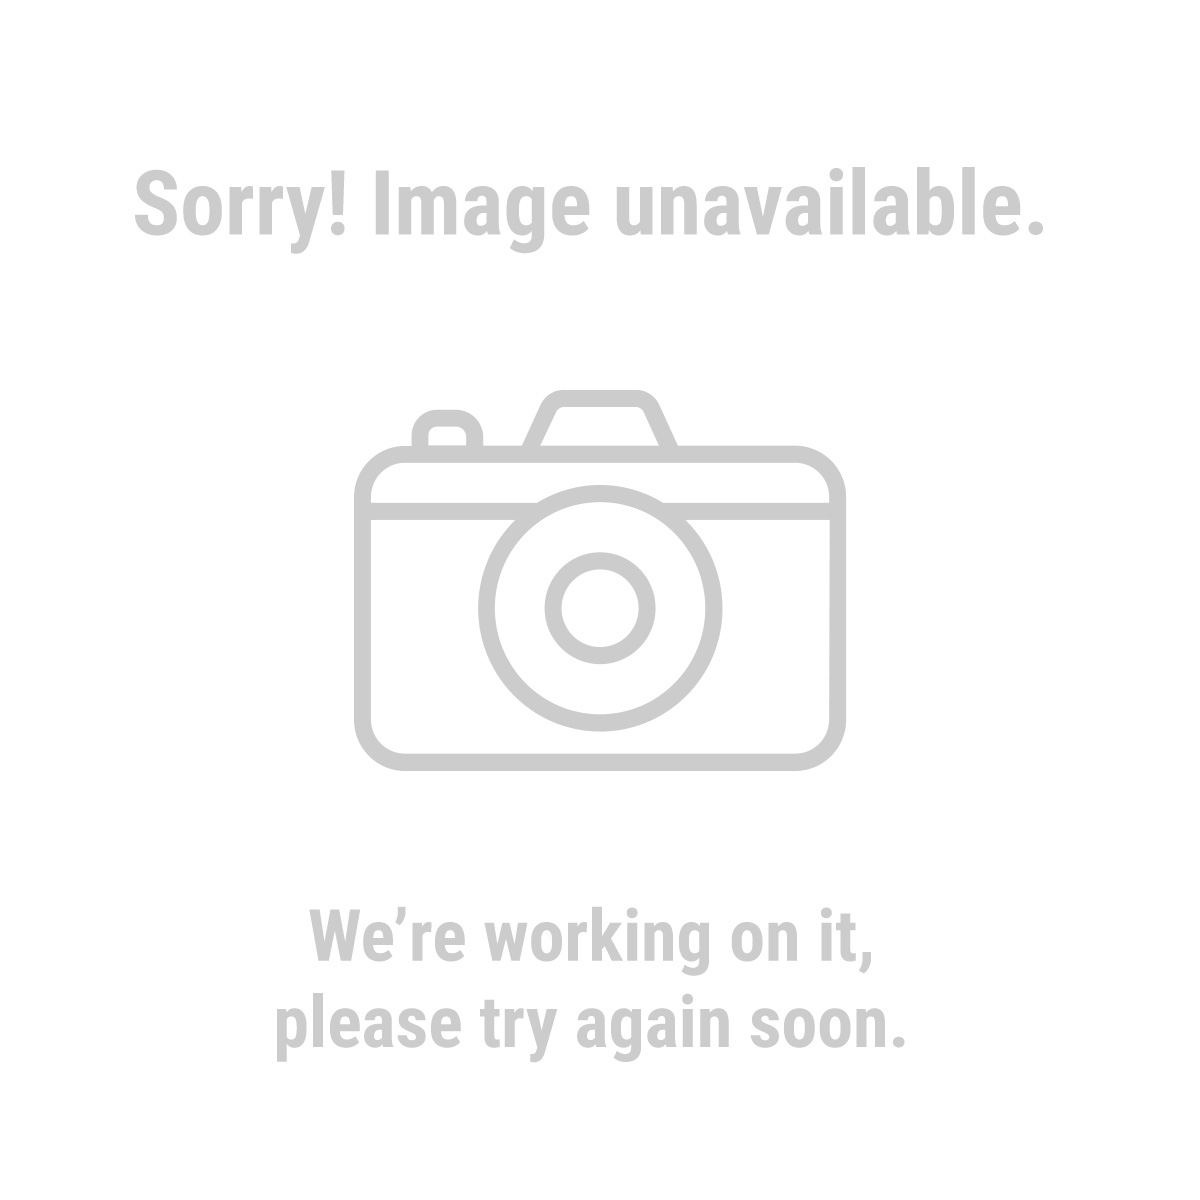 Storehouse 67559 550 Piece Sheet Metal Screw Storehouse